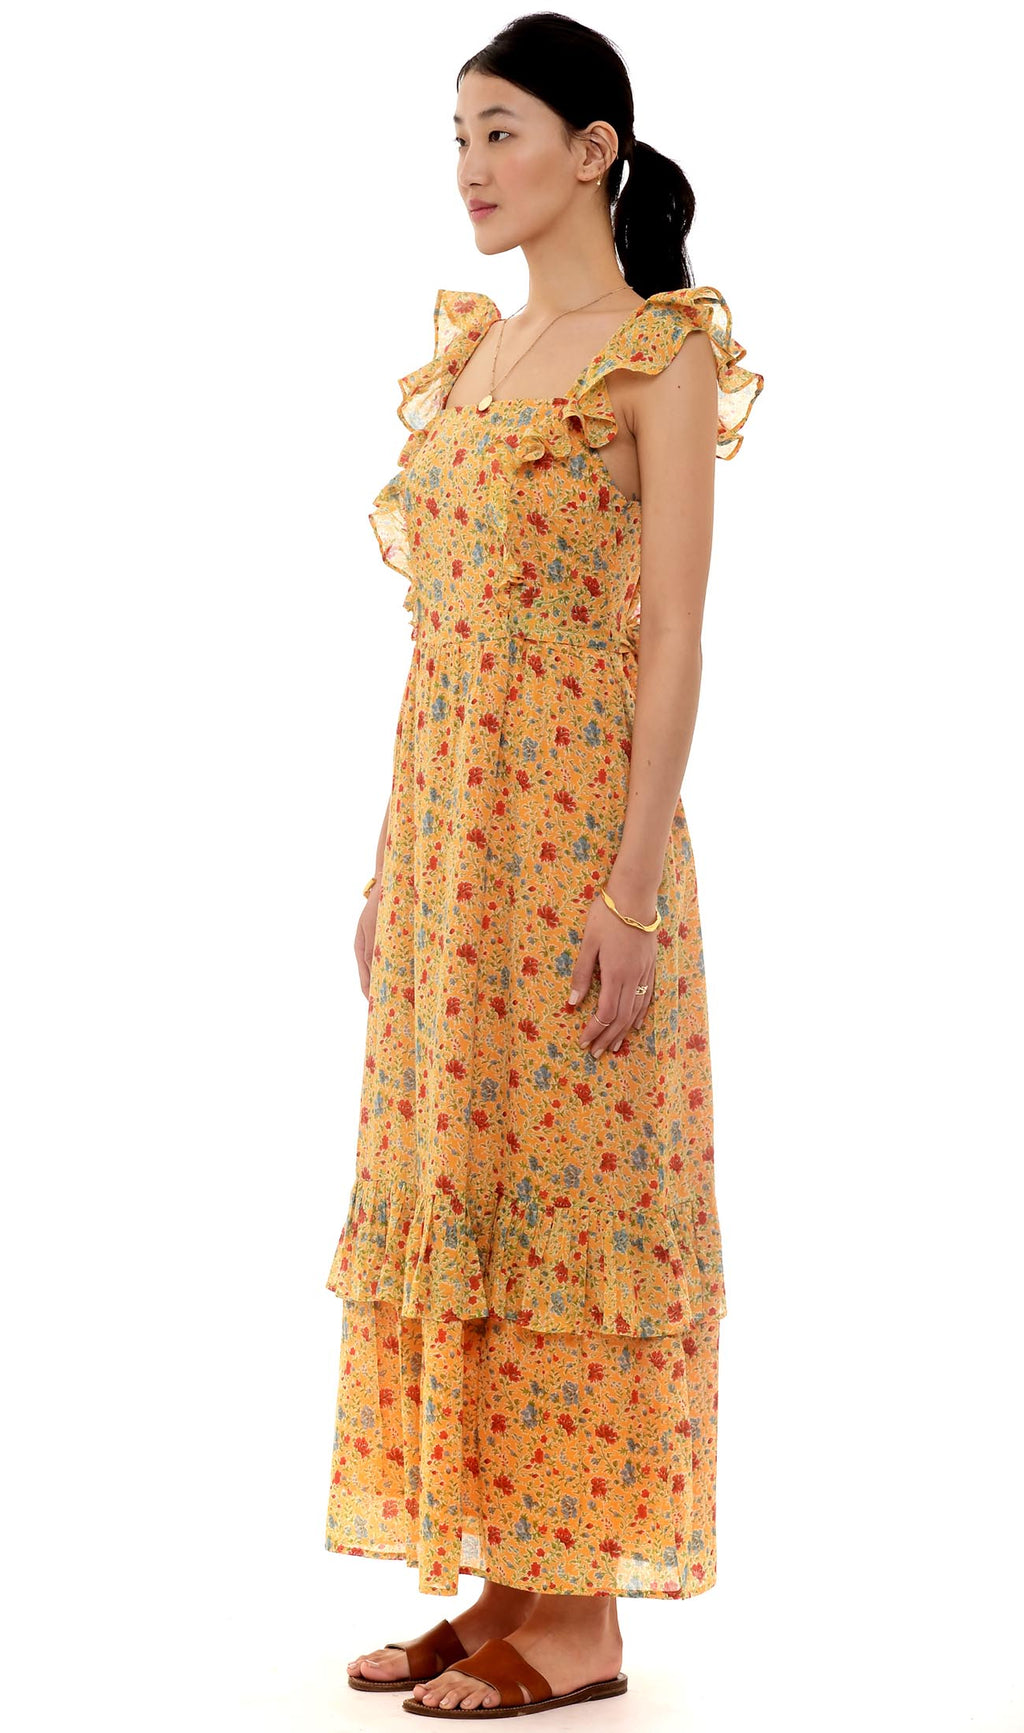 Cinta Dress, Siesta Bright Marigold, 100% Organic Cotton Voile